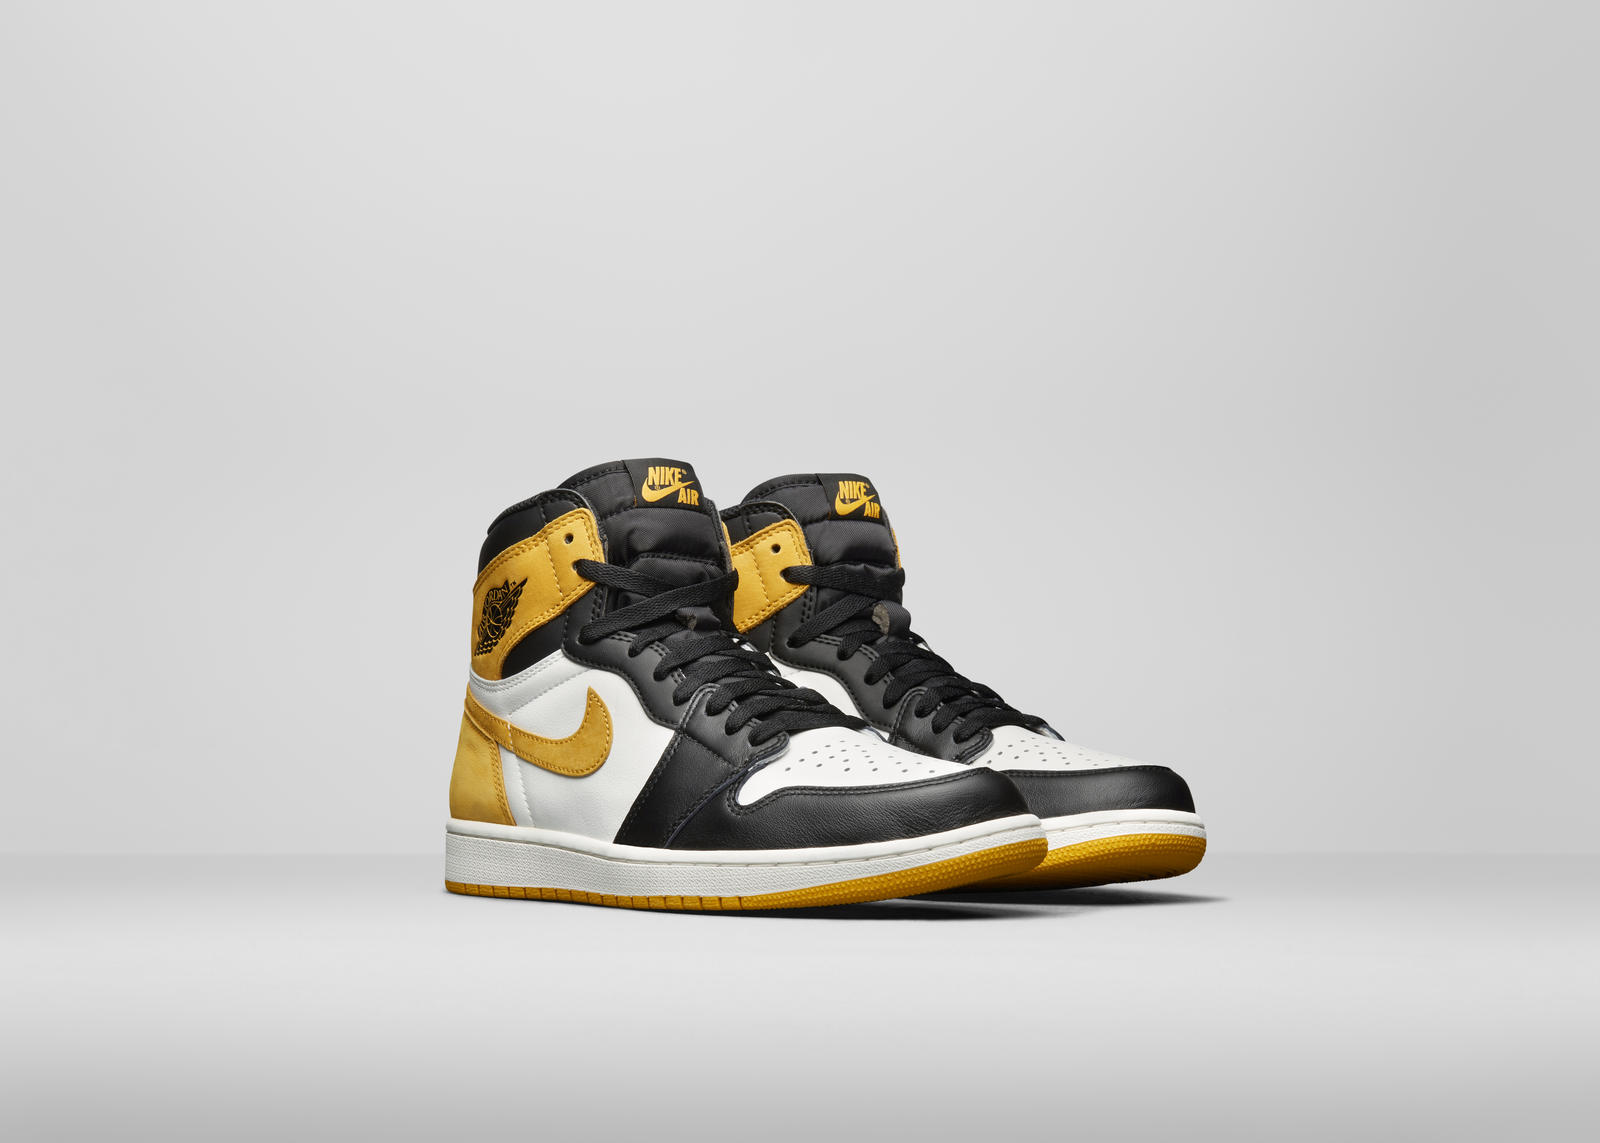 9ea1a938a66 The Best Hand in the Game Collection of Air Jordan 1s - Nike News